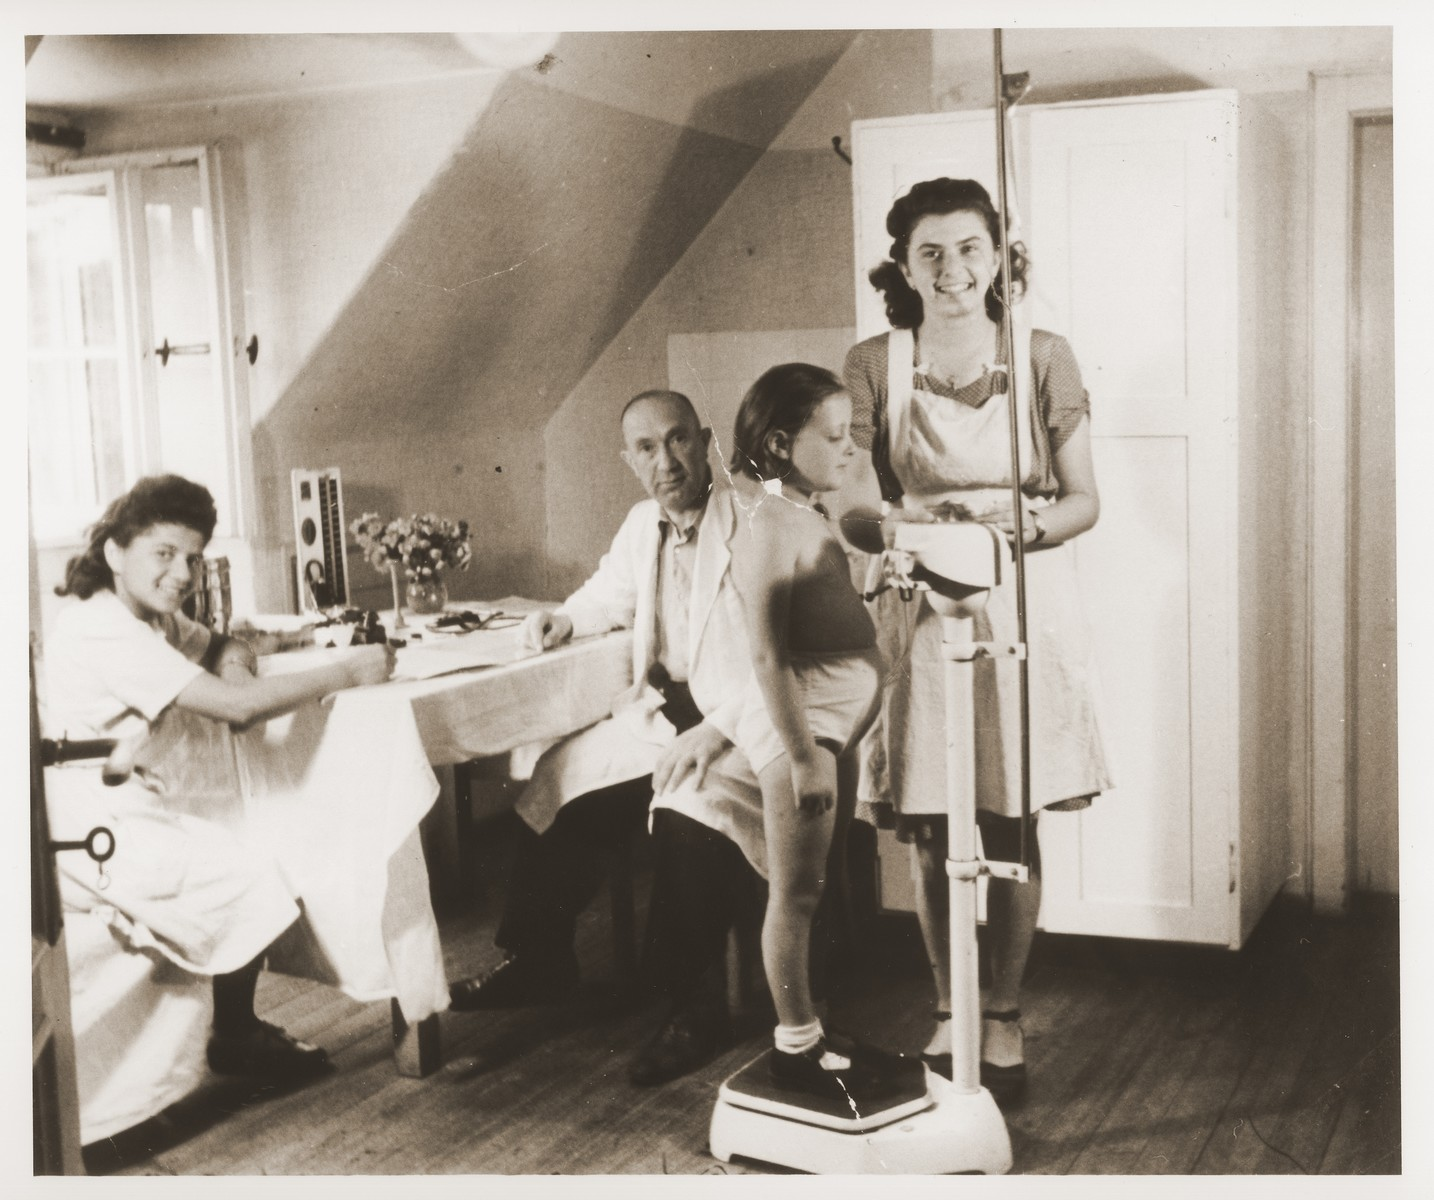 A young girl is weighed at a doctor's office in a sanatorium near Foehrenwald.    Among those pictured are Gisella Lachs Littman (seated at the table) and Kato Roth (standing on the right).